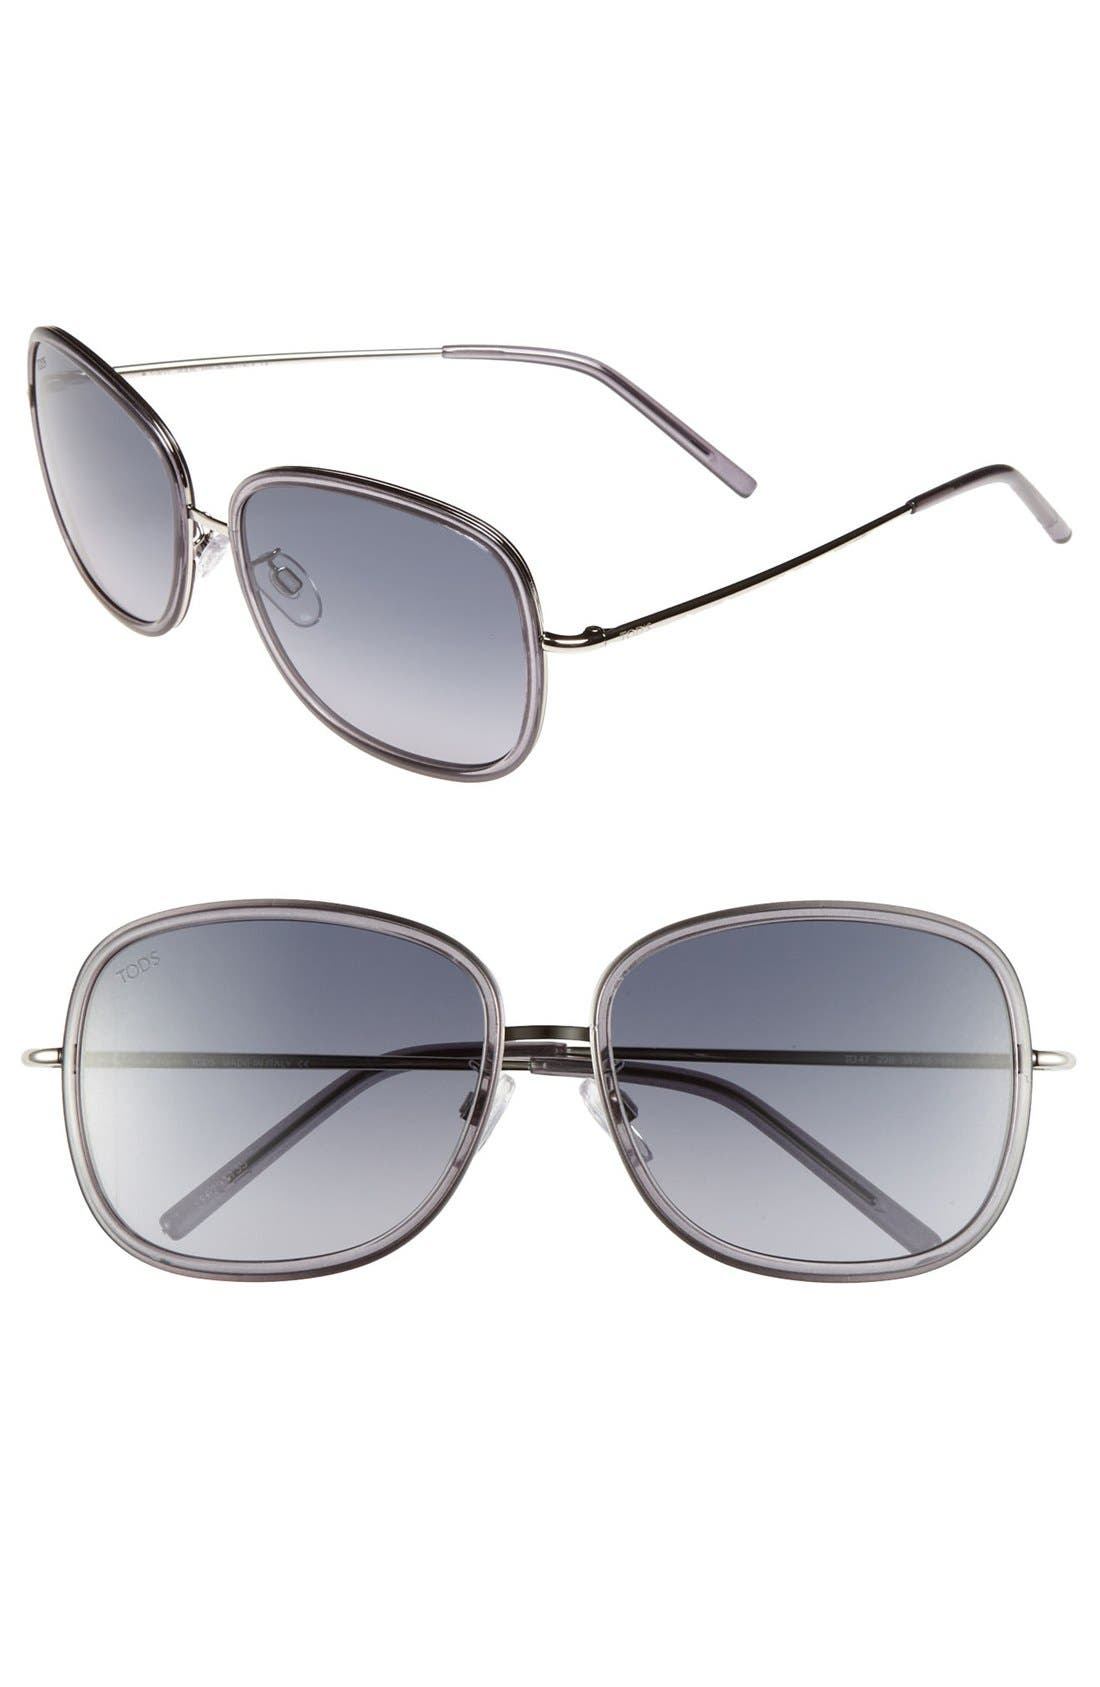 Alternate Image 1 Selected - Tod's 'Sung' 58mm Metal Aviator Sunglasses